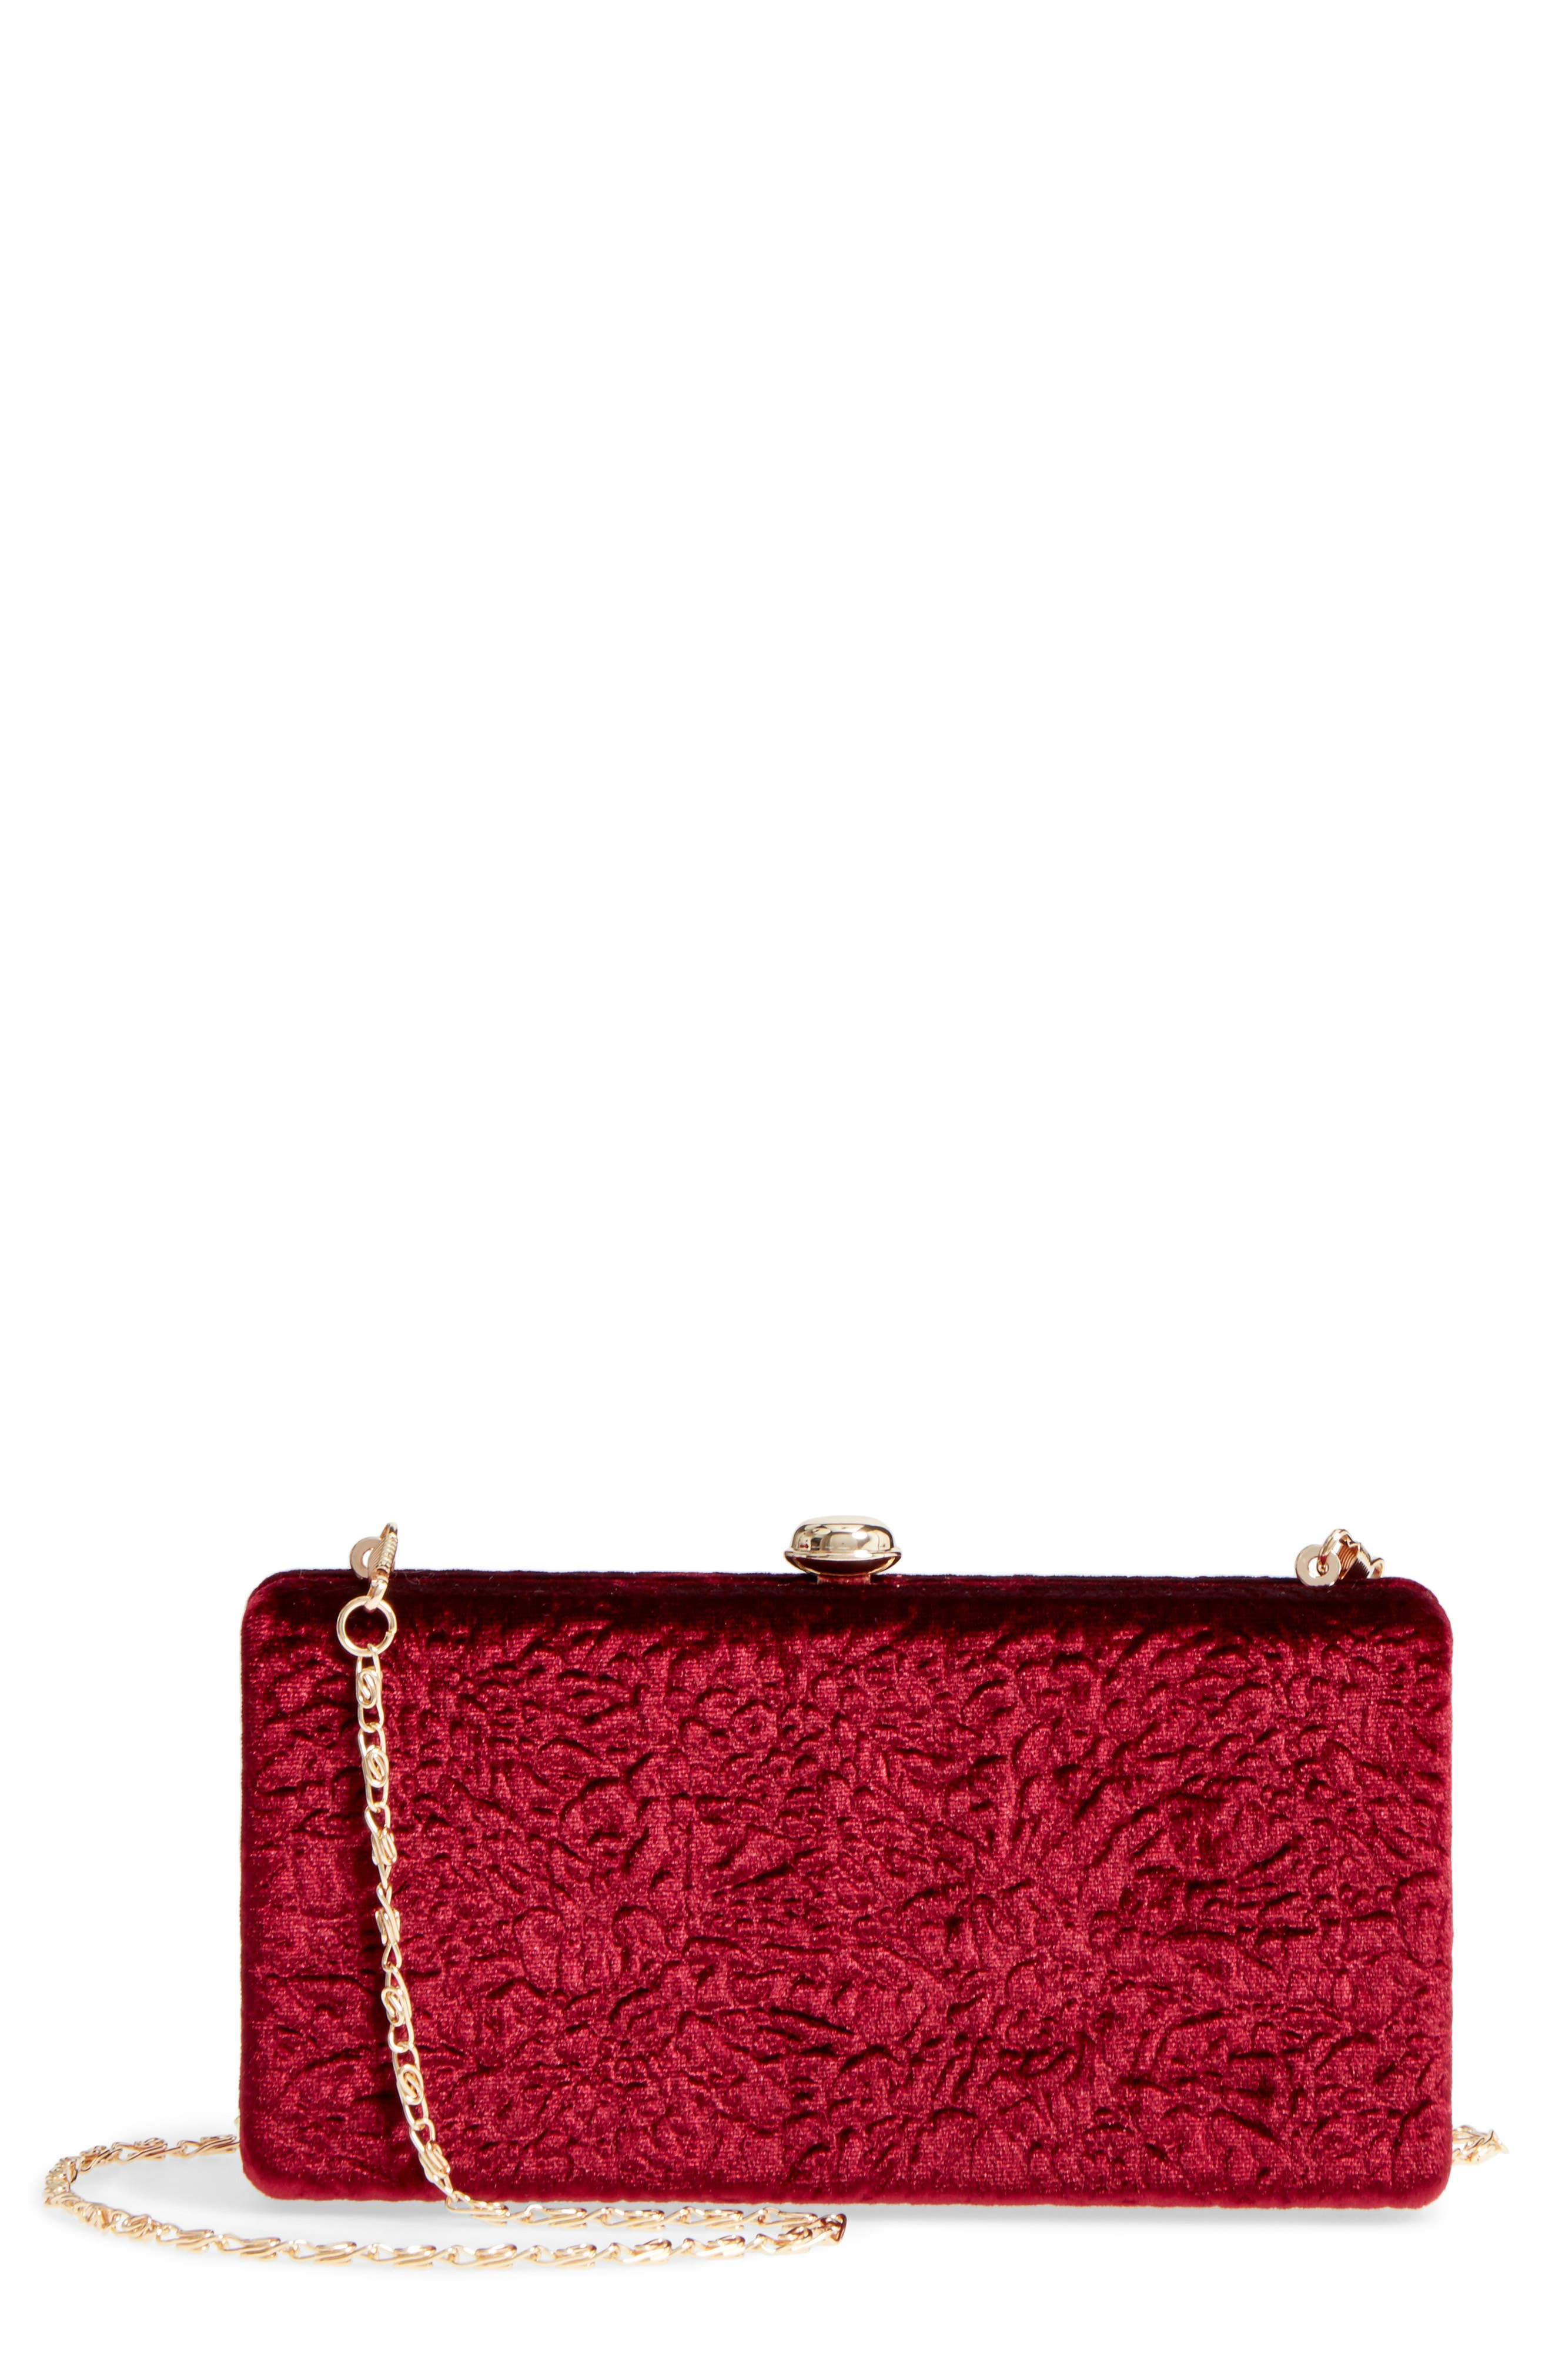 Alternate Image 1 Selected - Sole Society Lyn Box Clutch